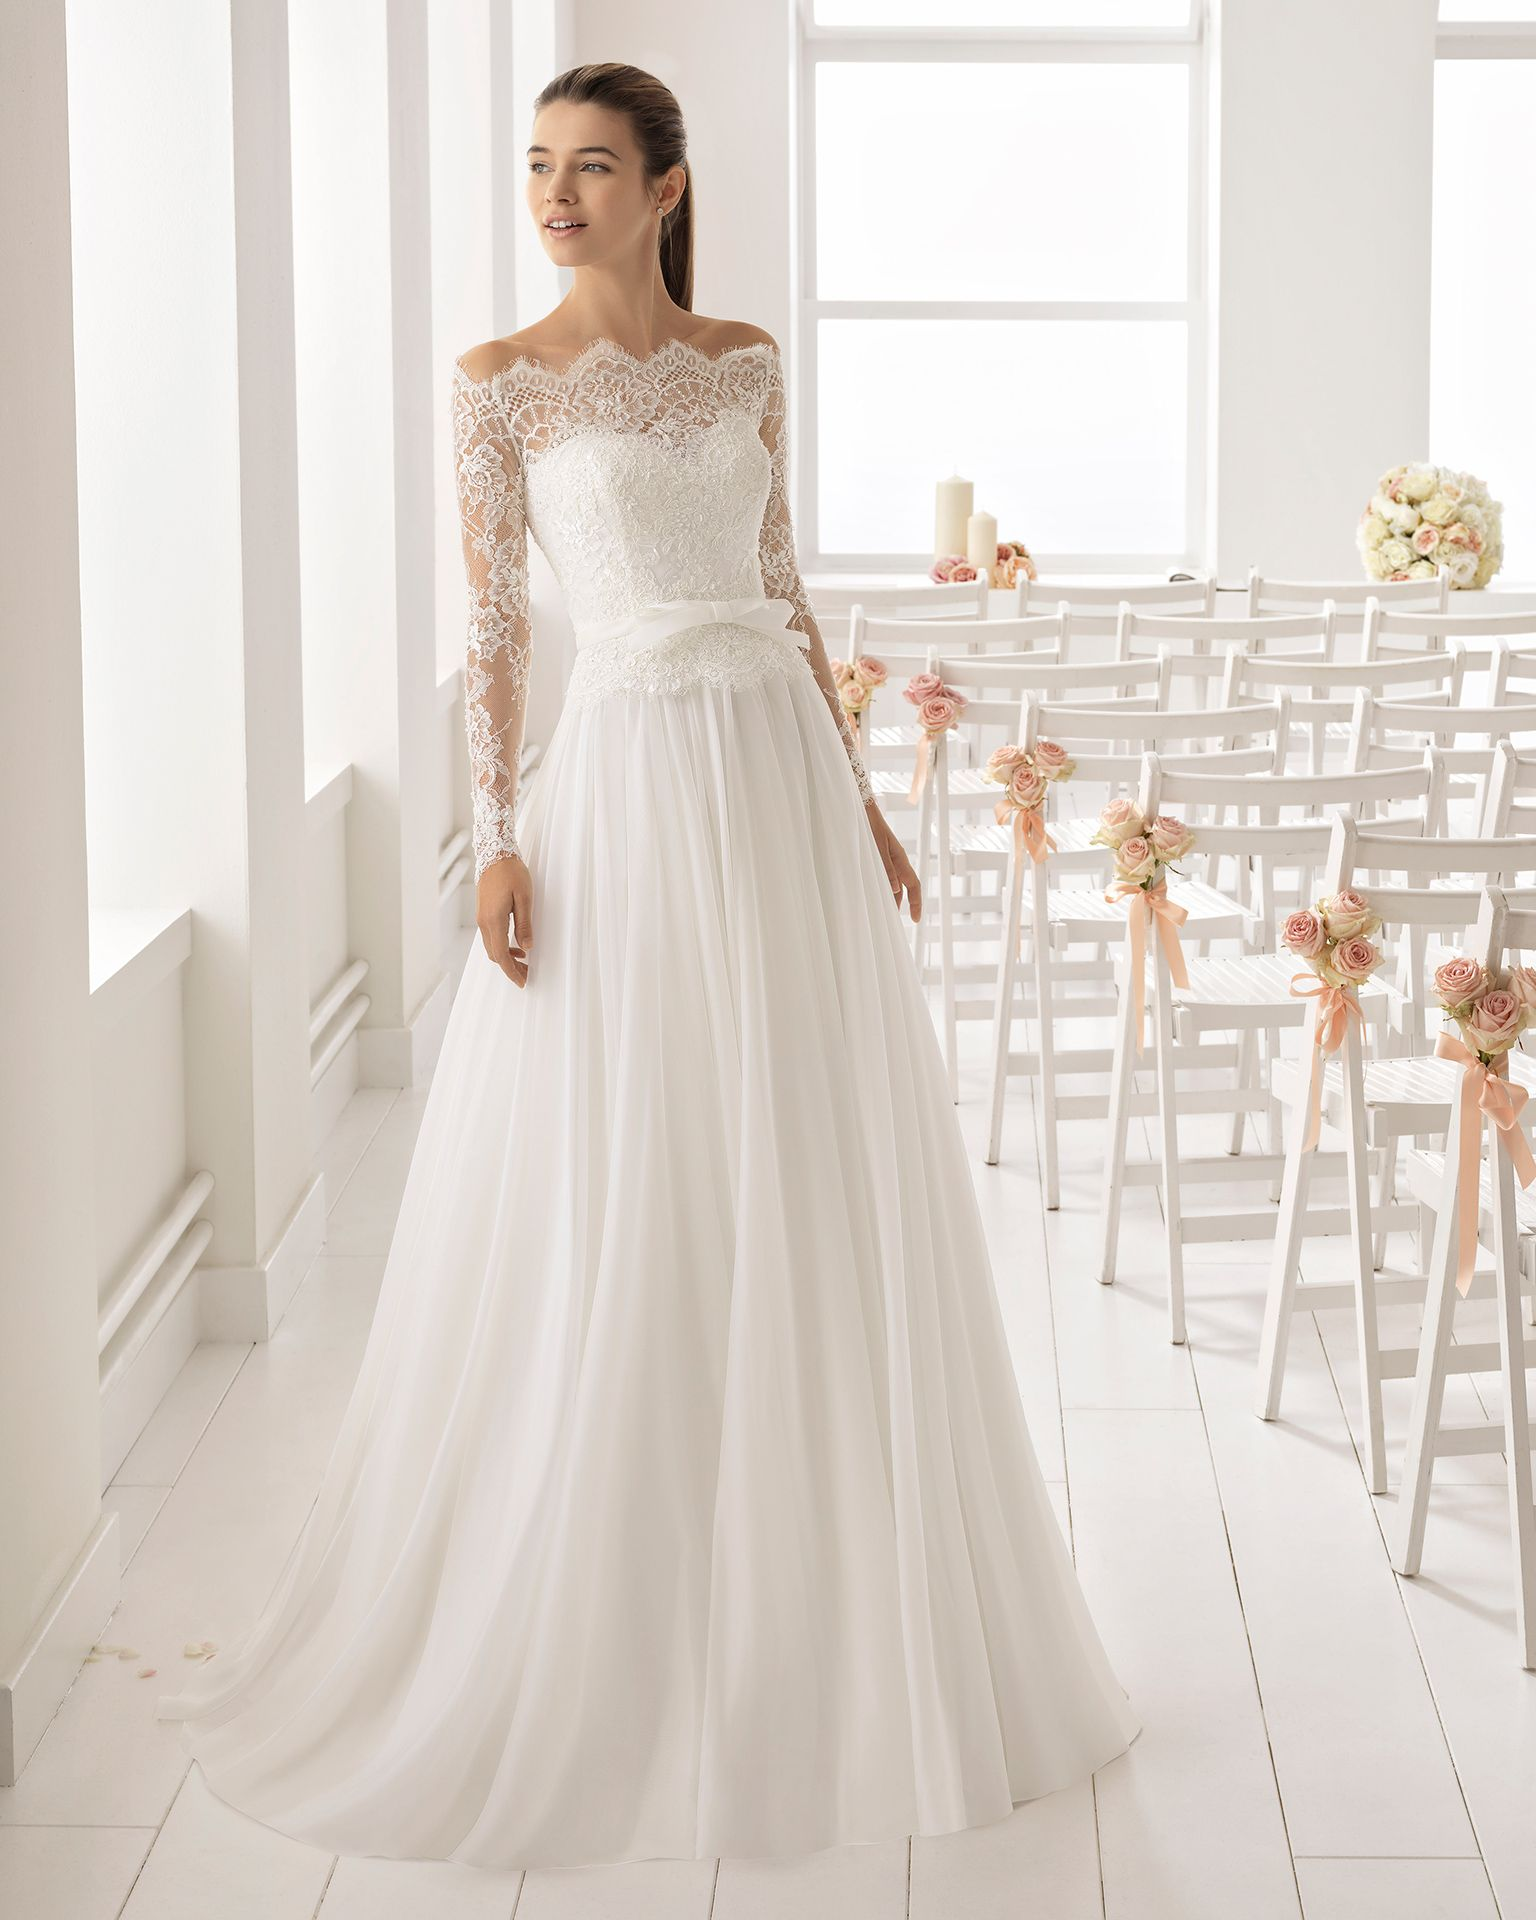 Romantic-style beaded lace and voile wedding dress with long sleeves and  off-the-shoulder neckline. 2018 Aire Barcelona Collection. d4fc5b86ef97